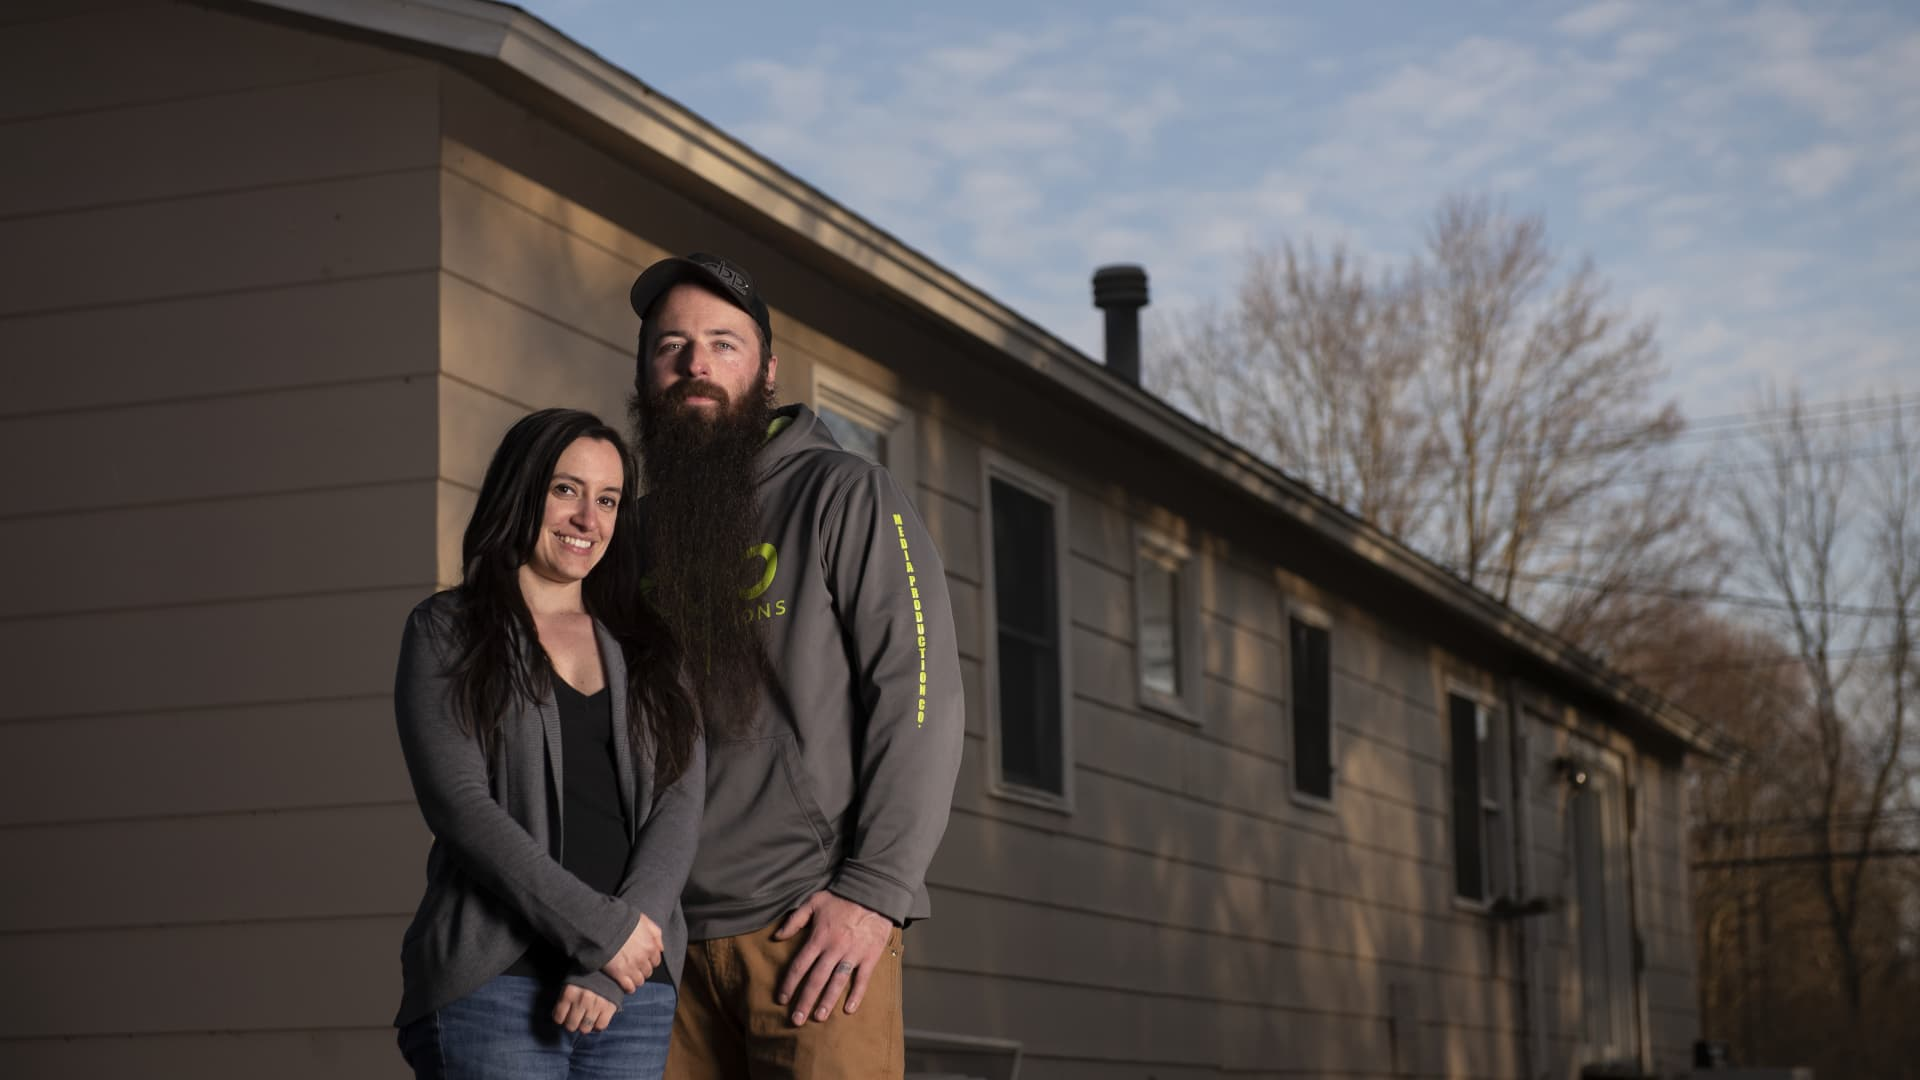 Jessica Kenney and her husband bought their 1,700-square-foot, three-bedroom, two-bathroom ranch in upstate New York for about $80,000 in 2010.